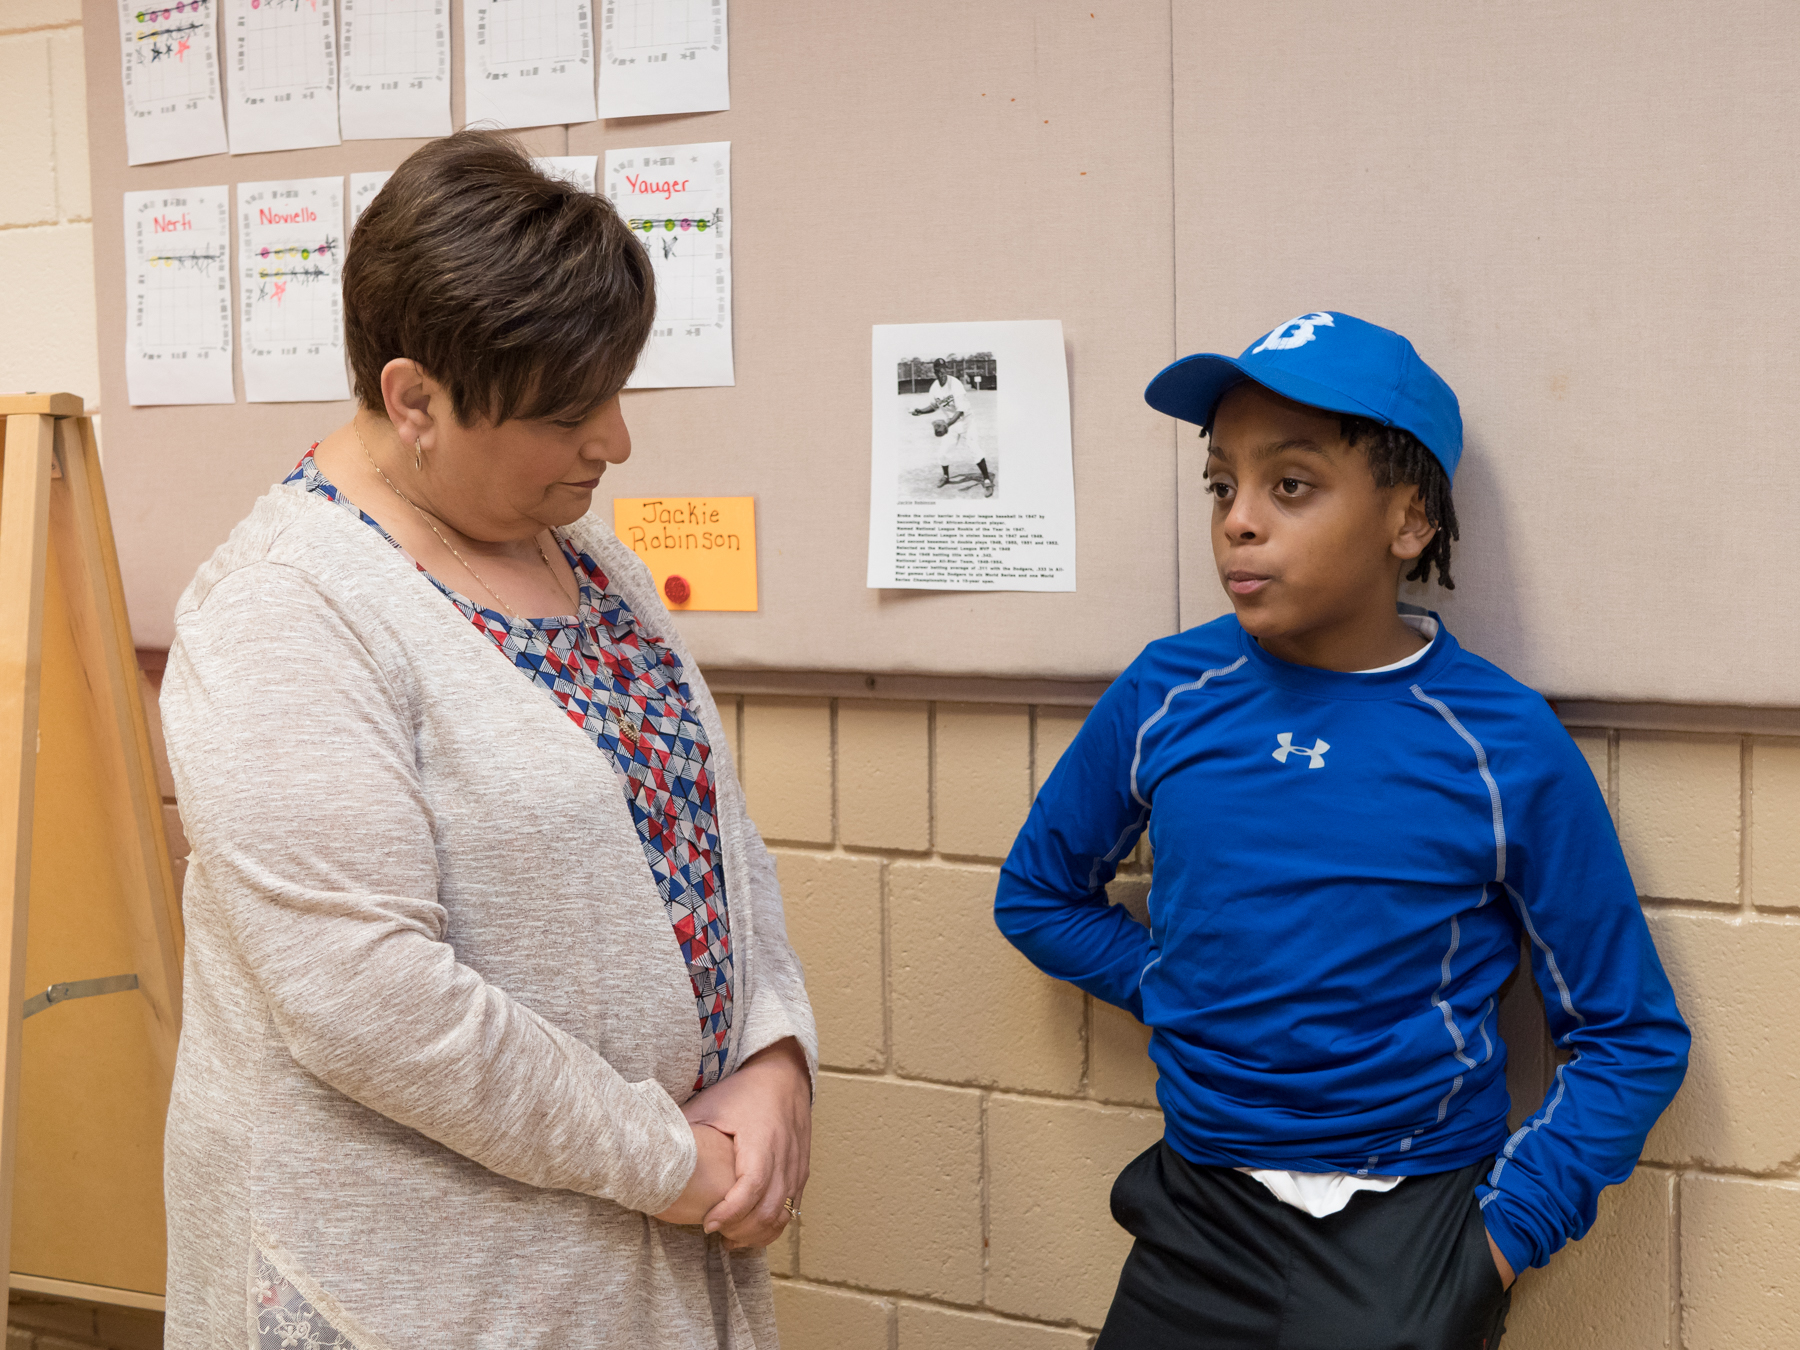 superintendent visiting wax museum